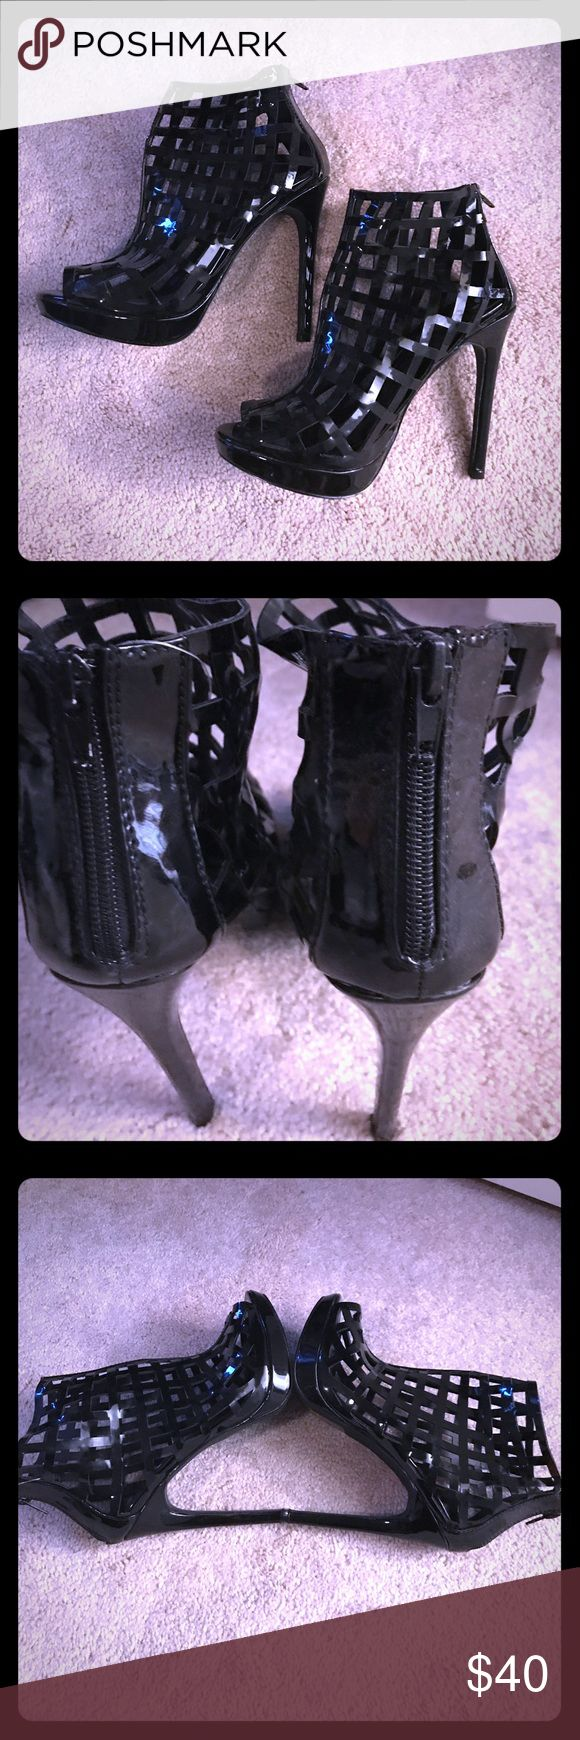 Shoe dazzle Caged Booties Shoe-dazzle Caged Booties Brand New Never Worn Black In Color Shoe Dazzle Shoes Ankle Boots & Booties